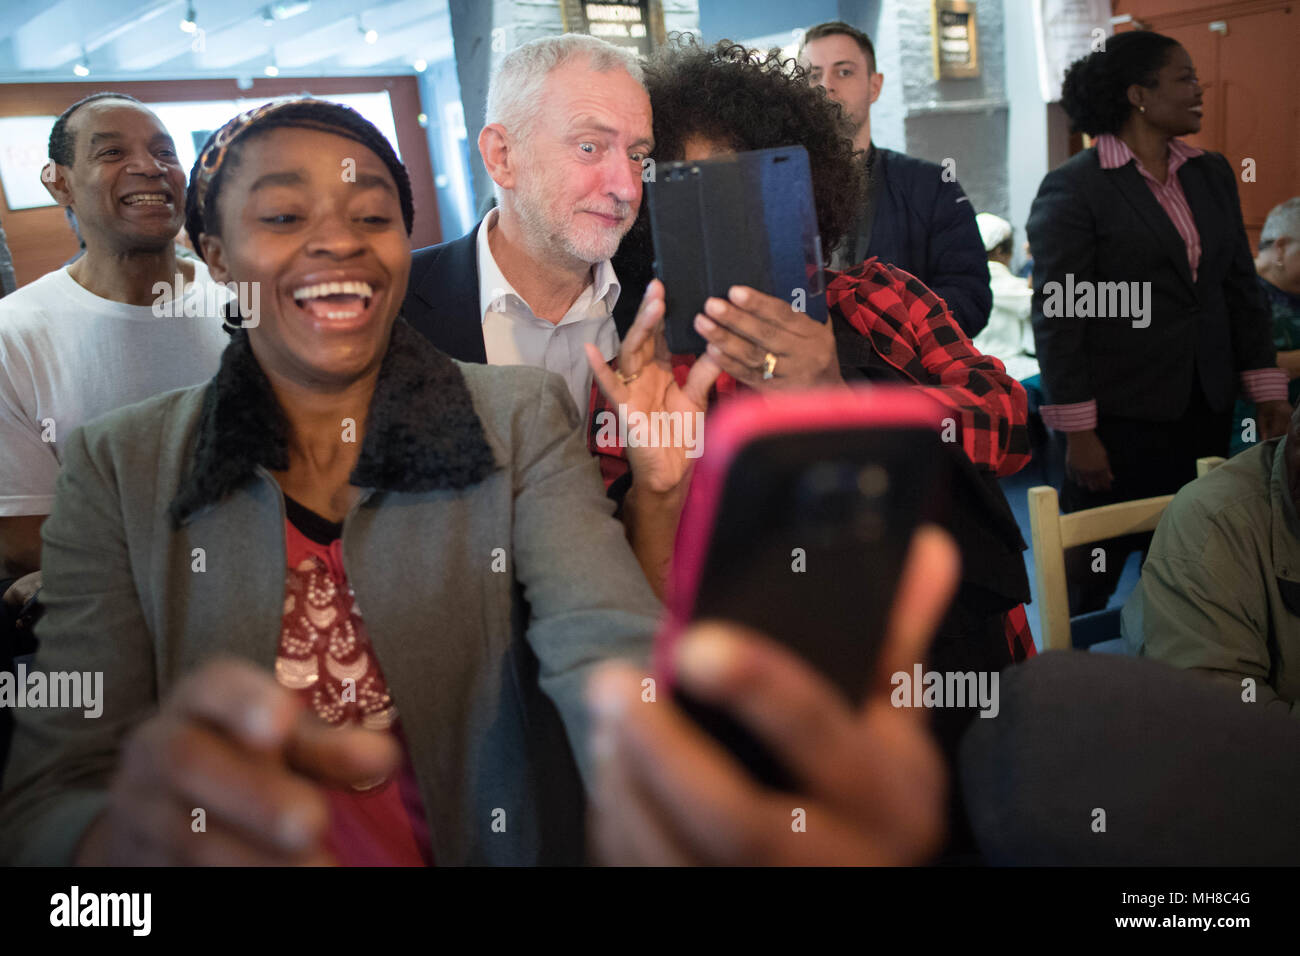 Labour leader Jeremy Corbyn poses for selfies as he meets people from the Caribbean and the West Indies, members of the Stockwell Good Neighbours community group, at the Oval House Theatre in Kennington, south London. - Stock Image